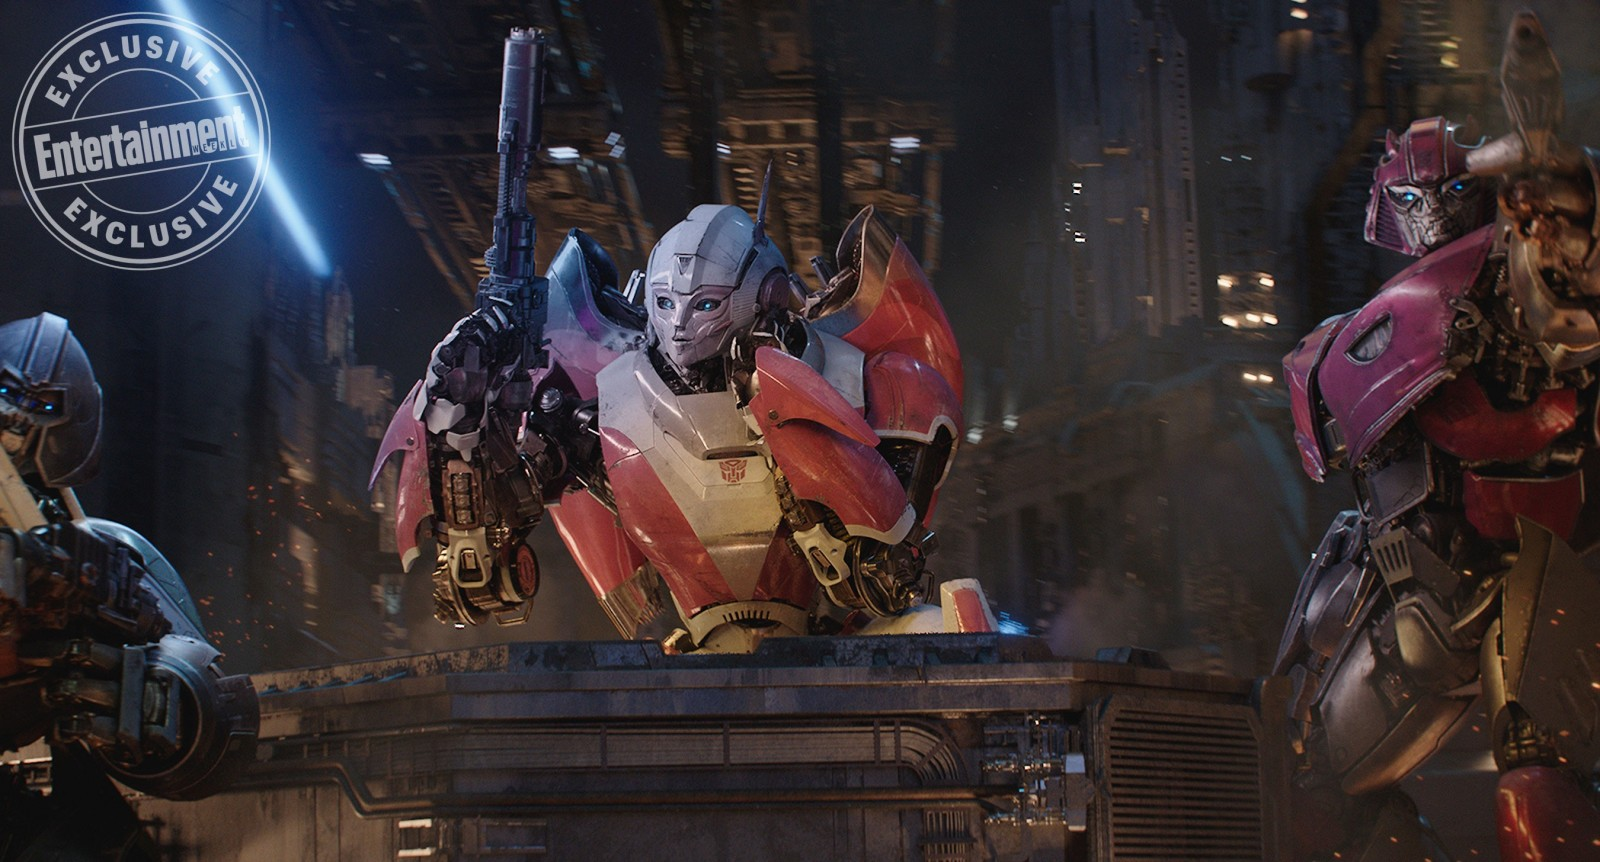 Transformers News: High Definition Images of Wheeljack, Arcee, Cliffjumper and More from Bumblebee Movie